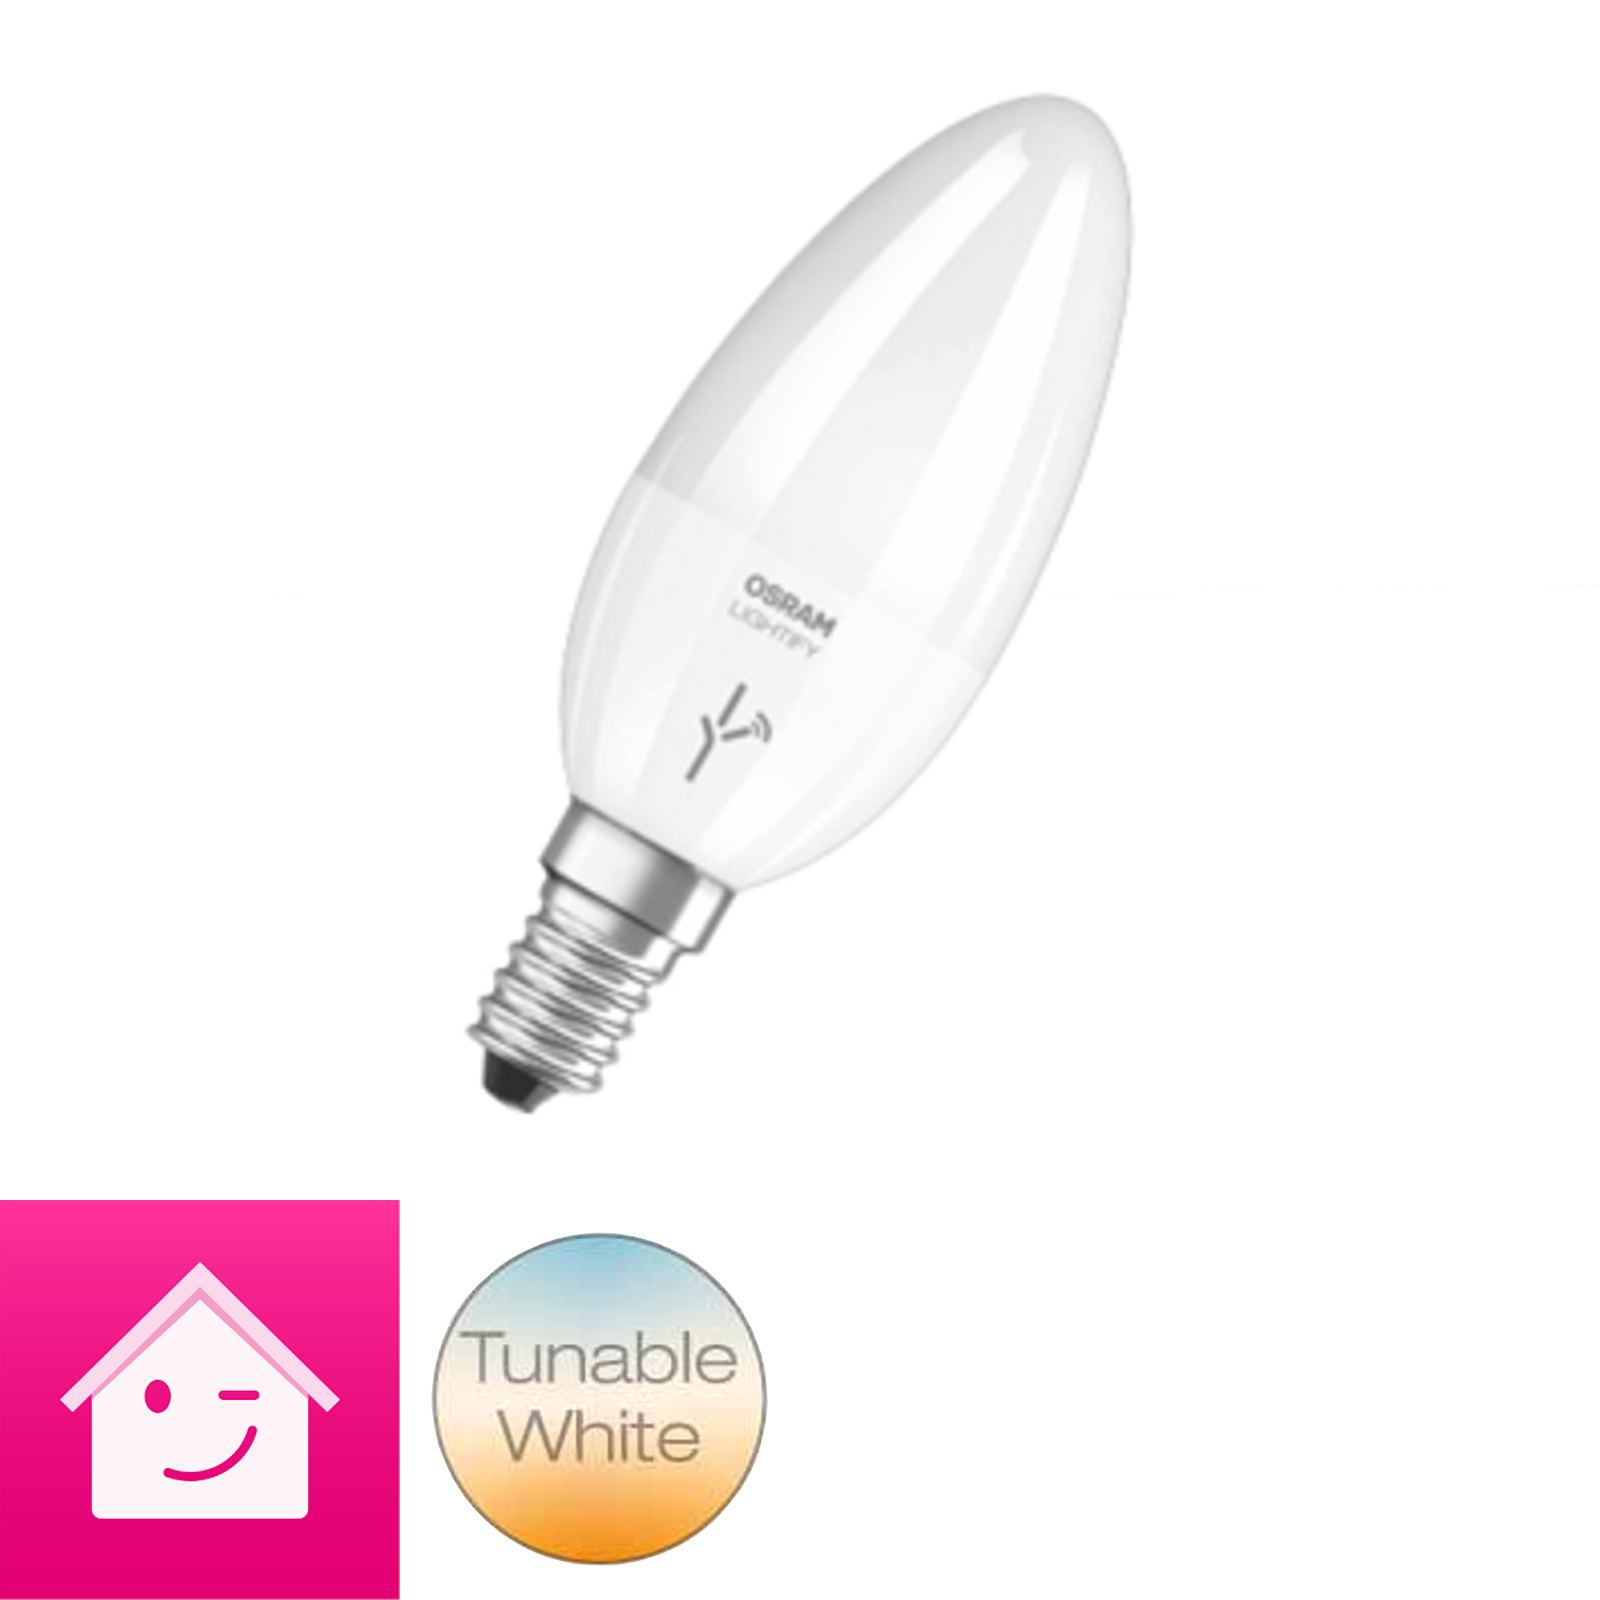 OSRAM LIGHTIFY Classic B LED-Glühlampe Kerzenform Tunable White, 6 Watt, E14, matt, / dimmbar / warmweiß 2700K - 6500K